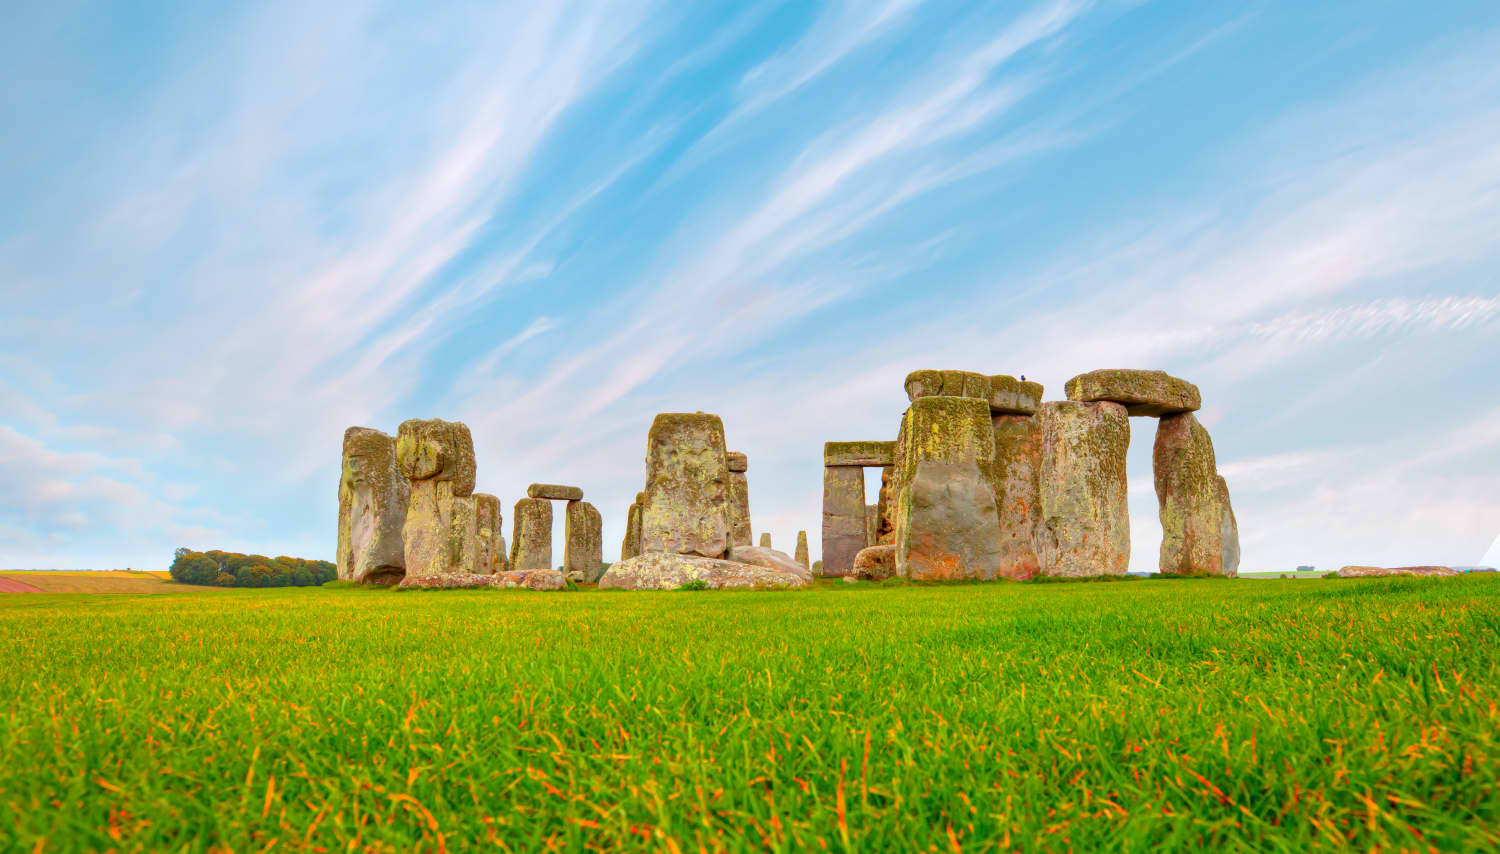 Stonehenge Will Livestream Its Summer Solstice Celebration In June—Here's How You Can Tune In